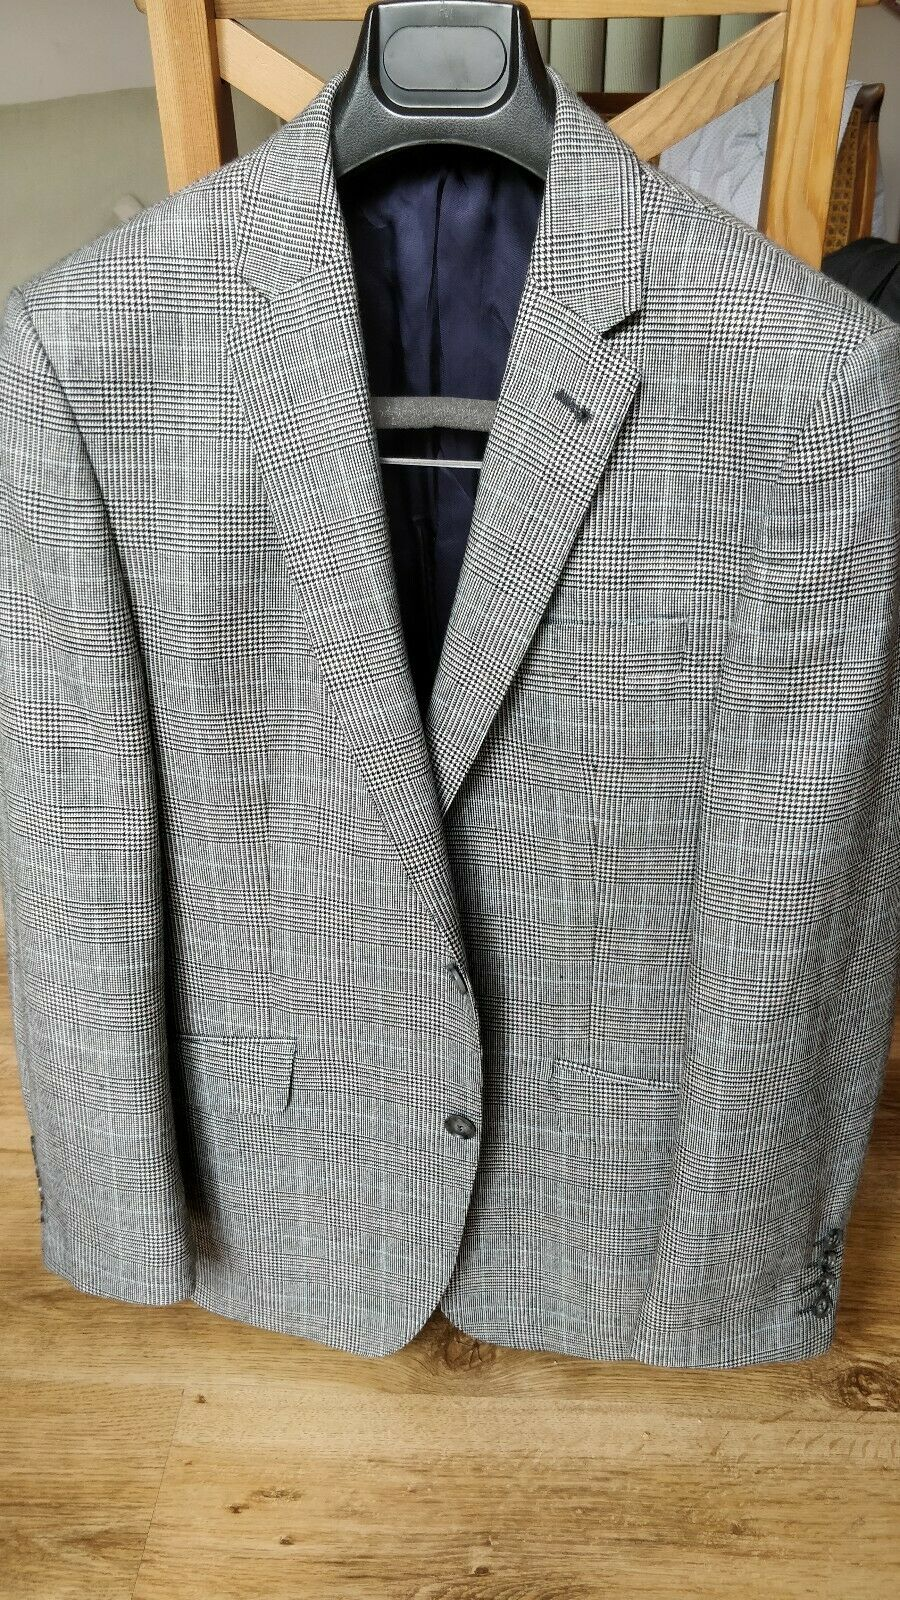 Prince of wales check suit 38R W32 - Only Worn A Couple Times